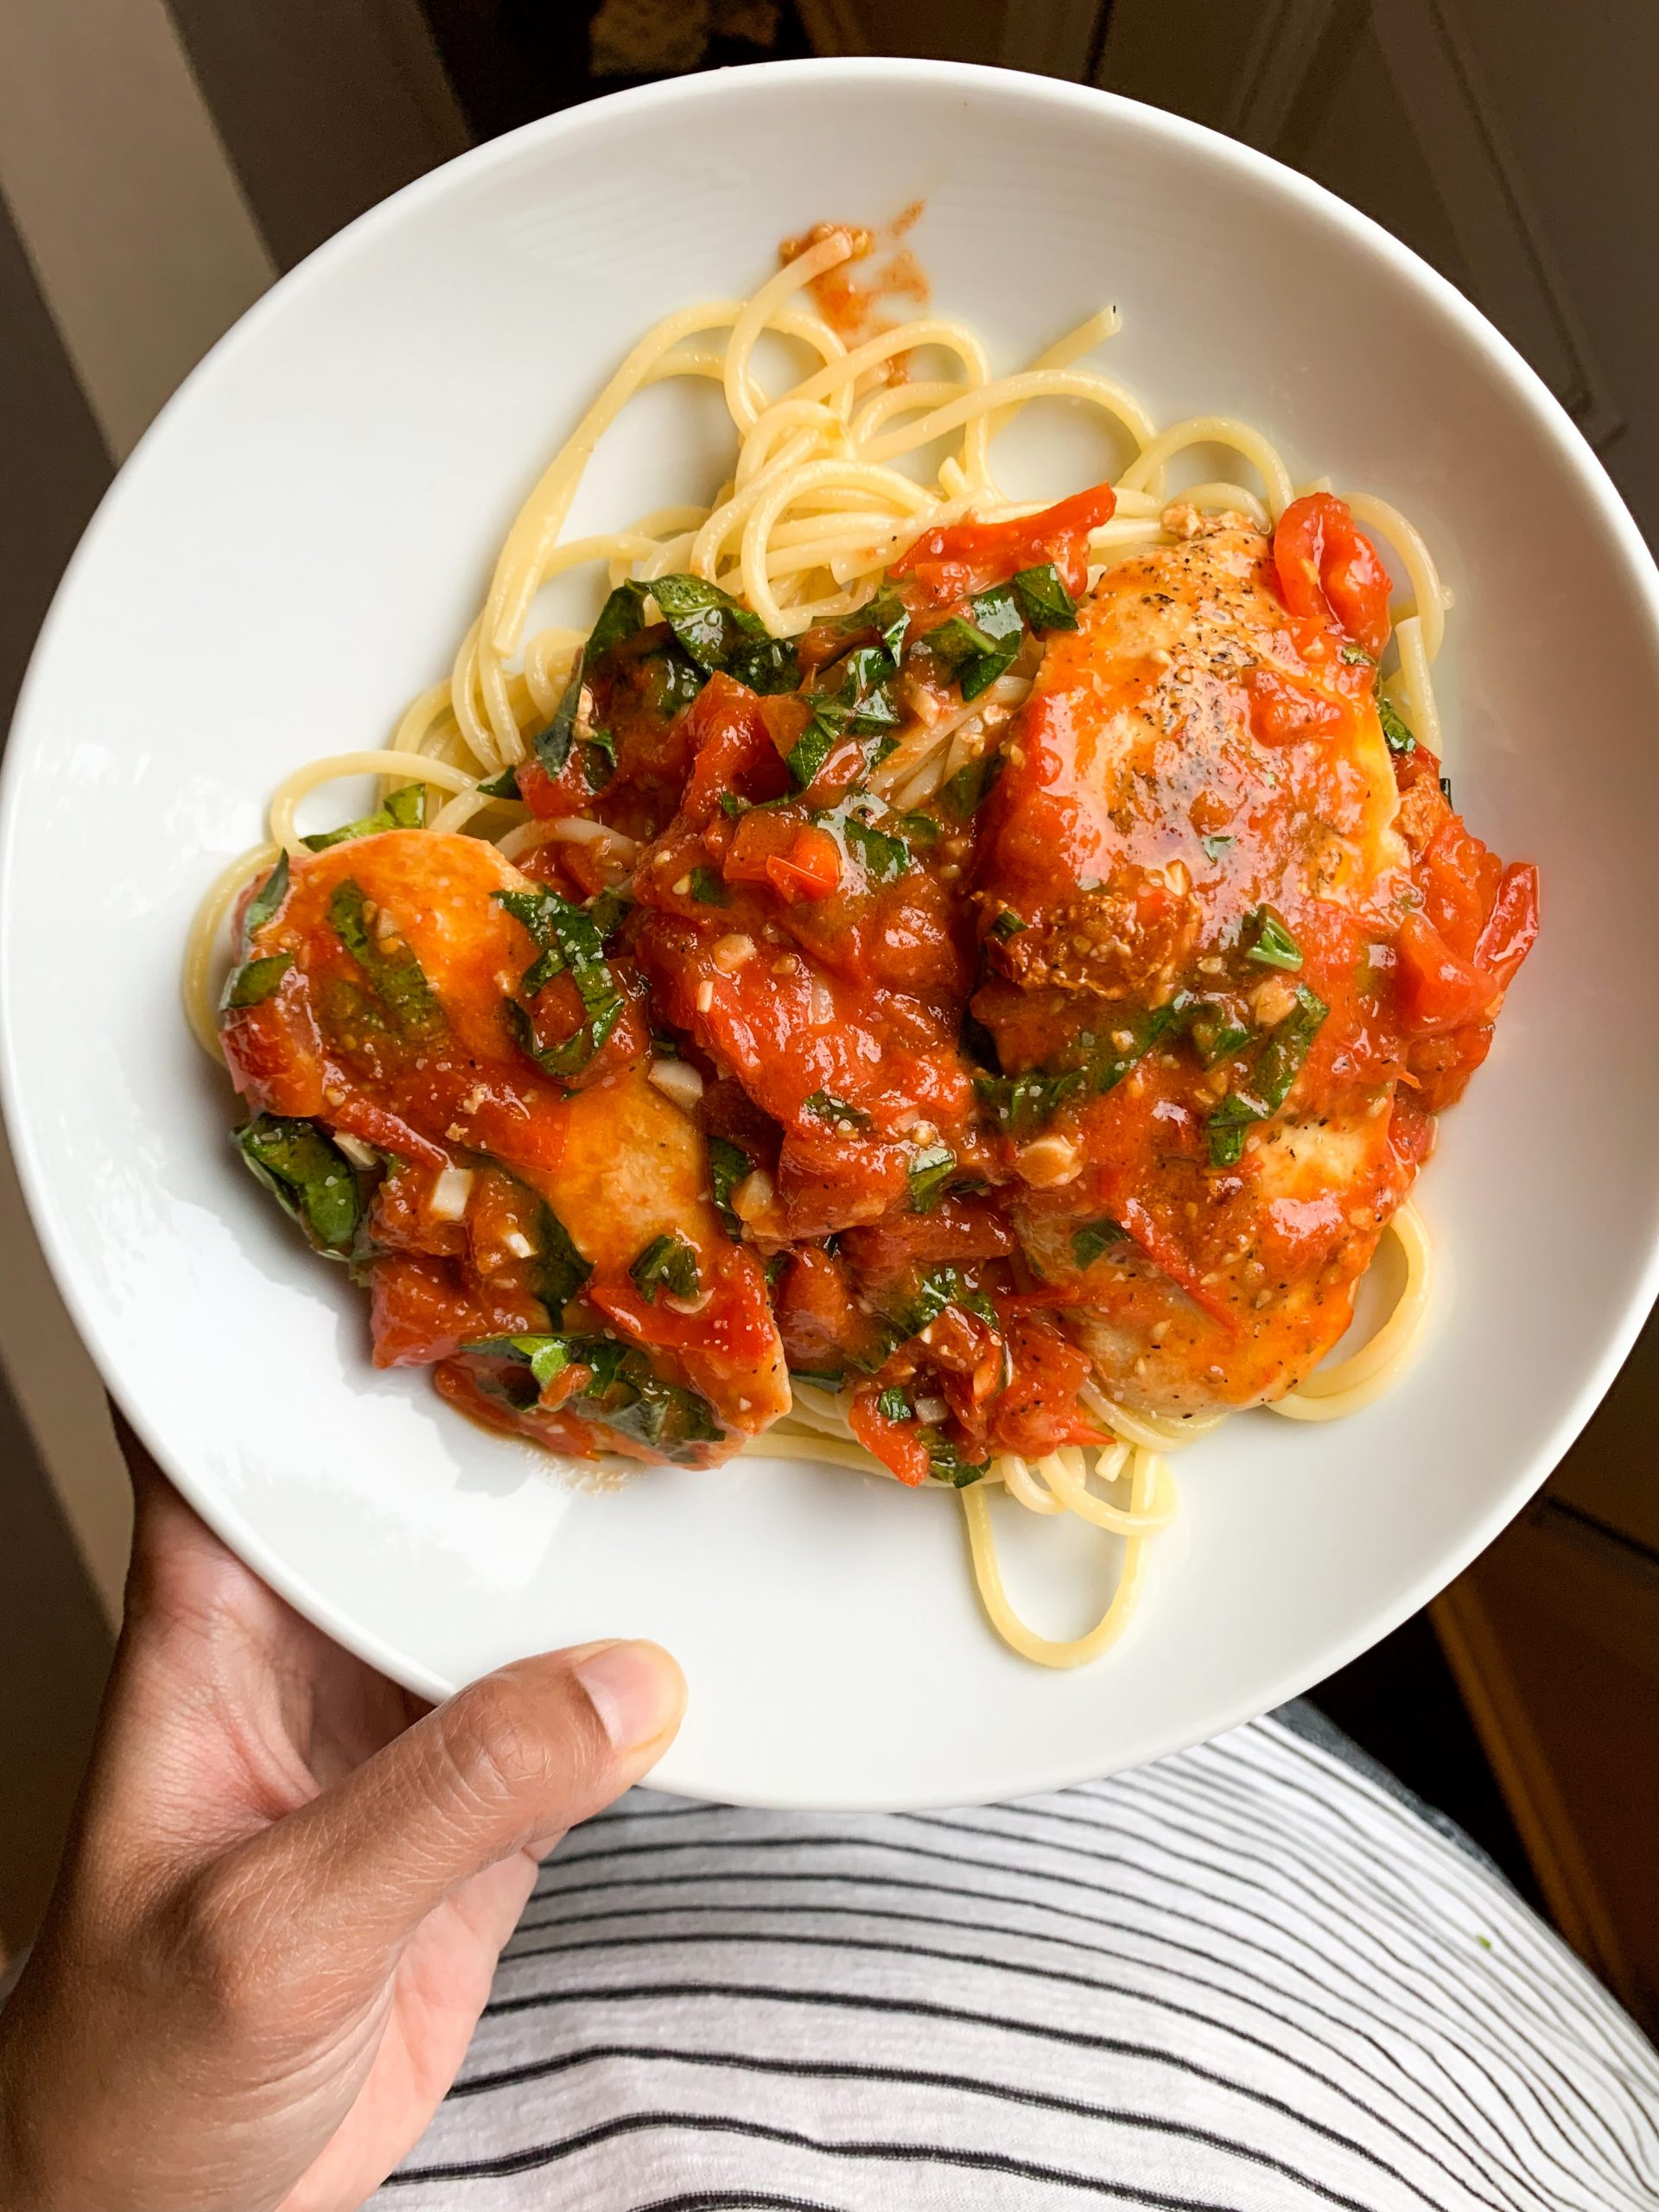 plate with spaghetti toped with tomato basil sauce and small chicken pieces